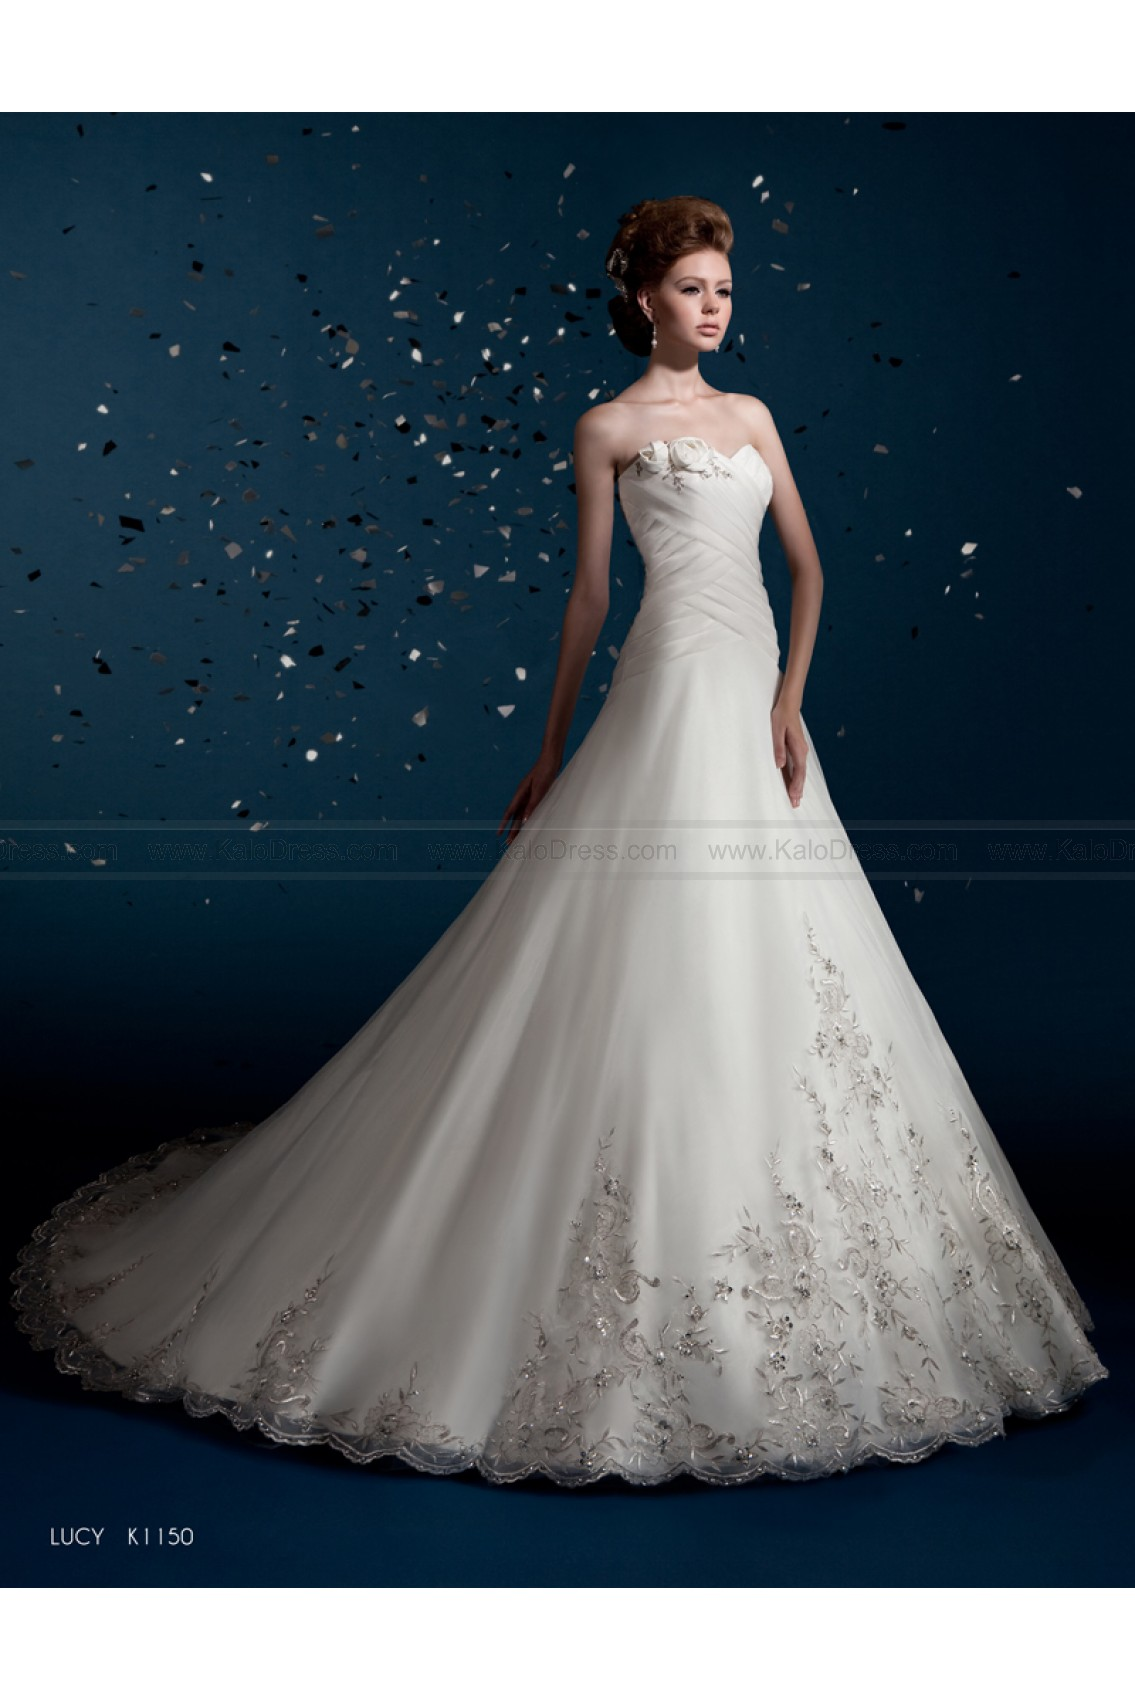 KITTYCHEN Couture - Style Lucy K1150 - Formal Wedding Dresses